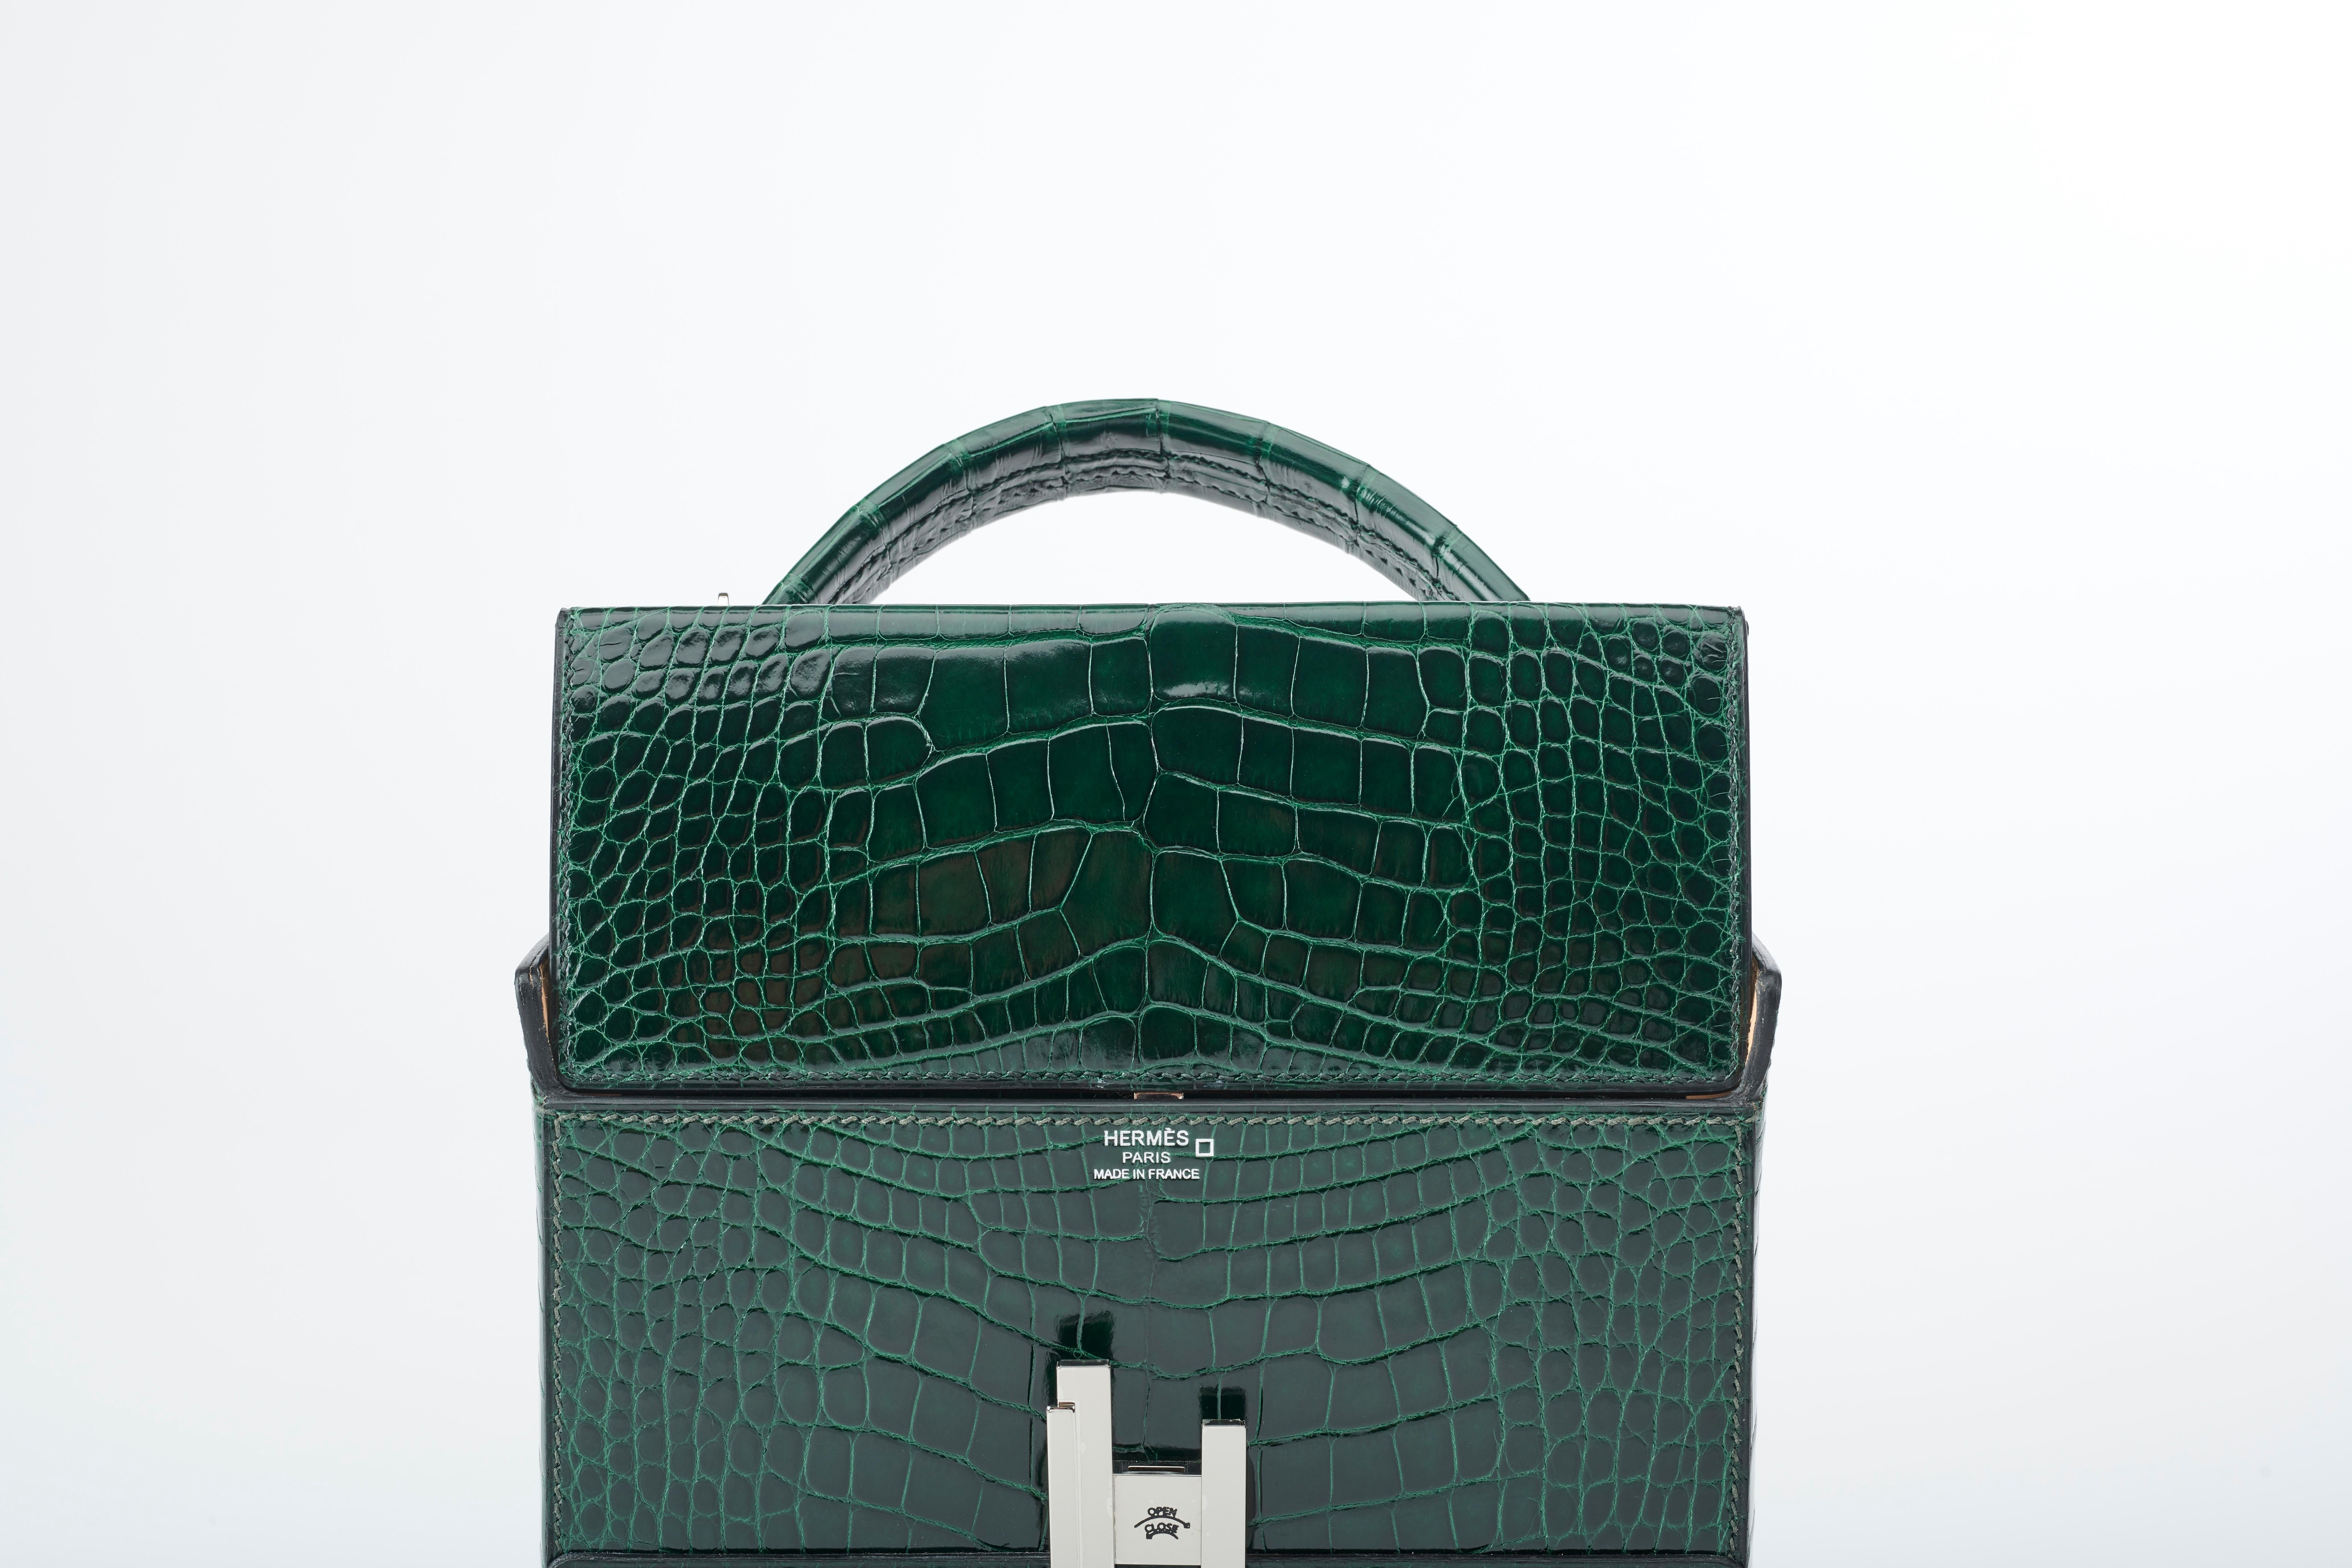 0e521e77ee Hermès Cinhetic in Vert Fonce Verso Alligator Leather with Palladium  hardware. For Sale at 1stdibs